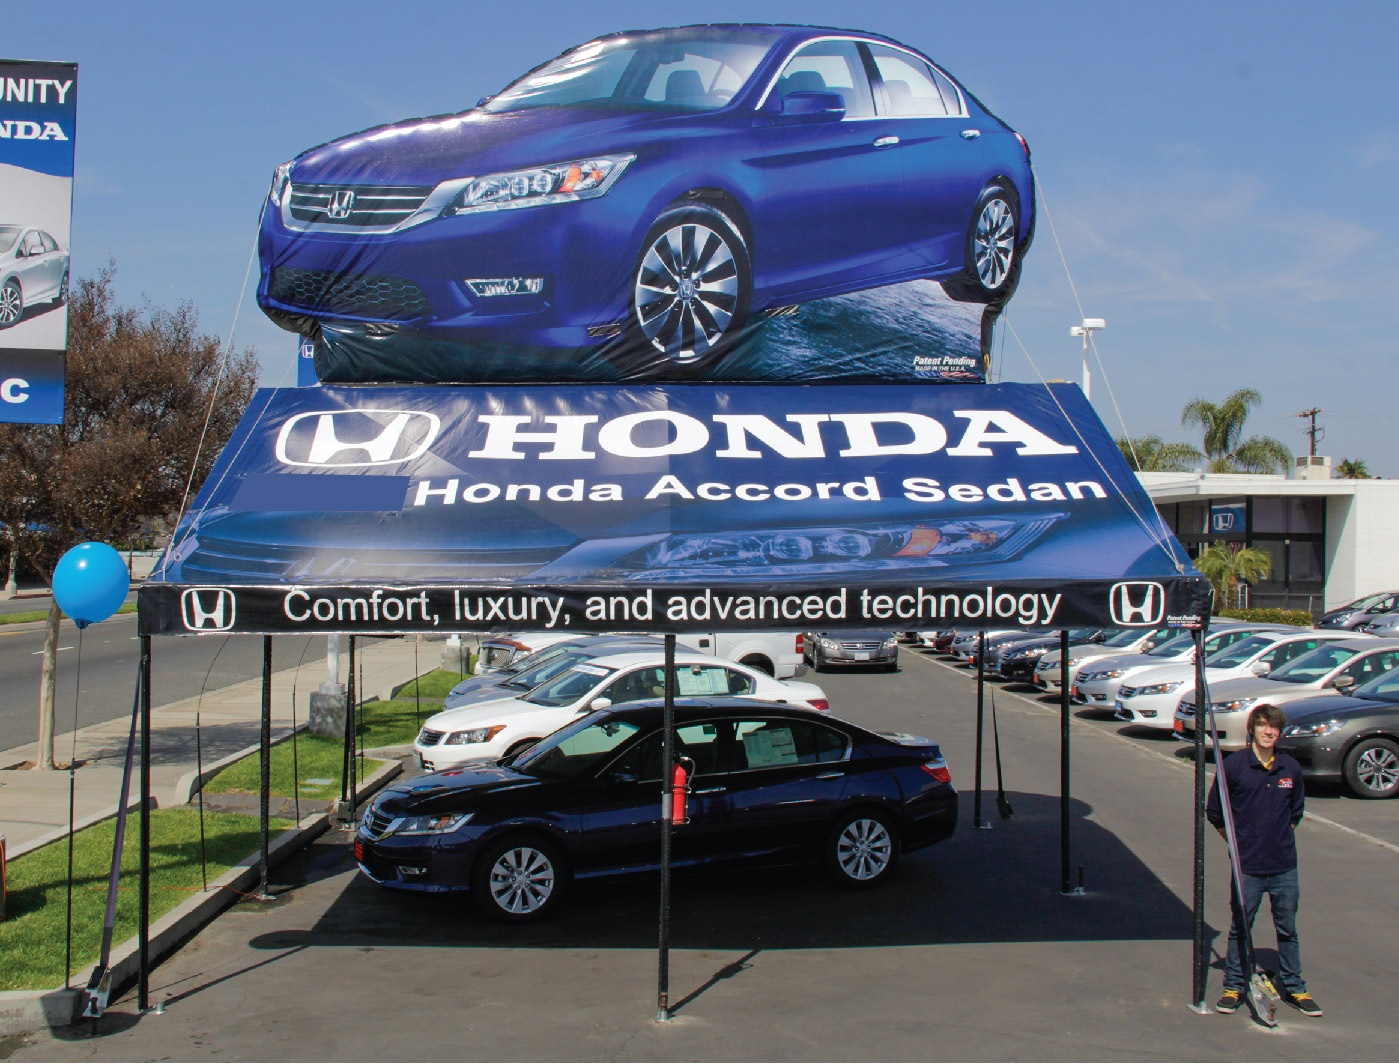 Honda Accord 20x20 Frame Tent with Inflatable